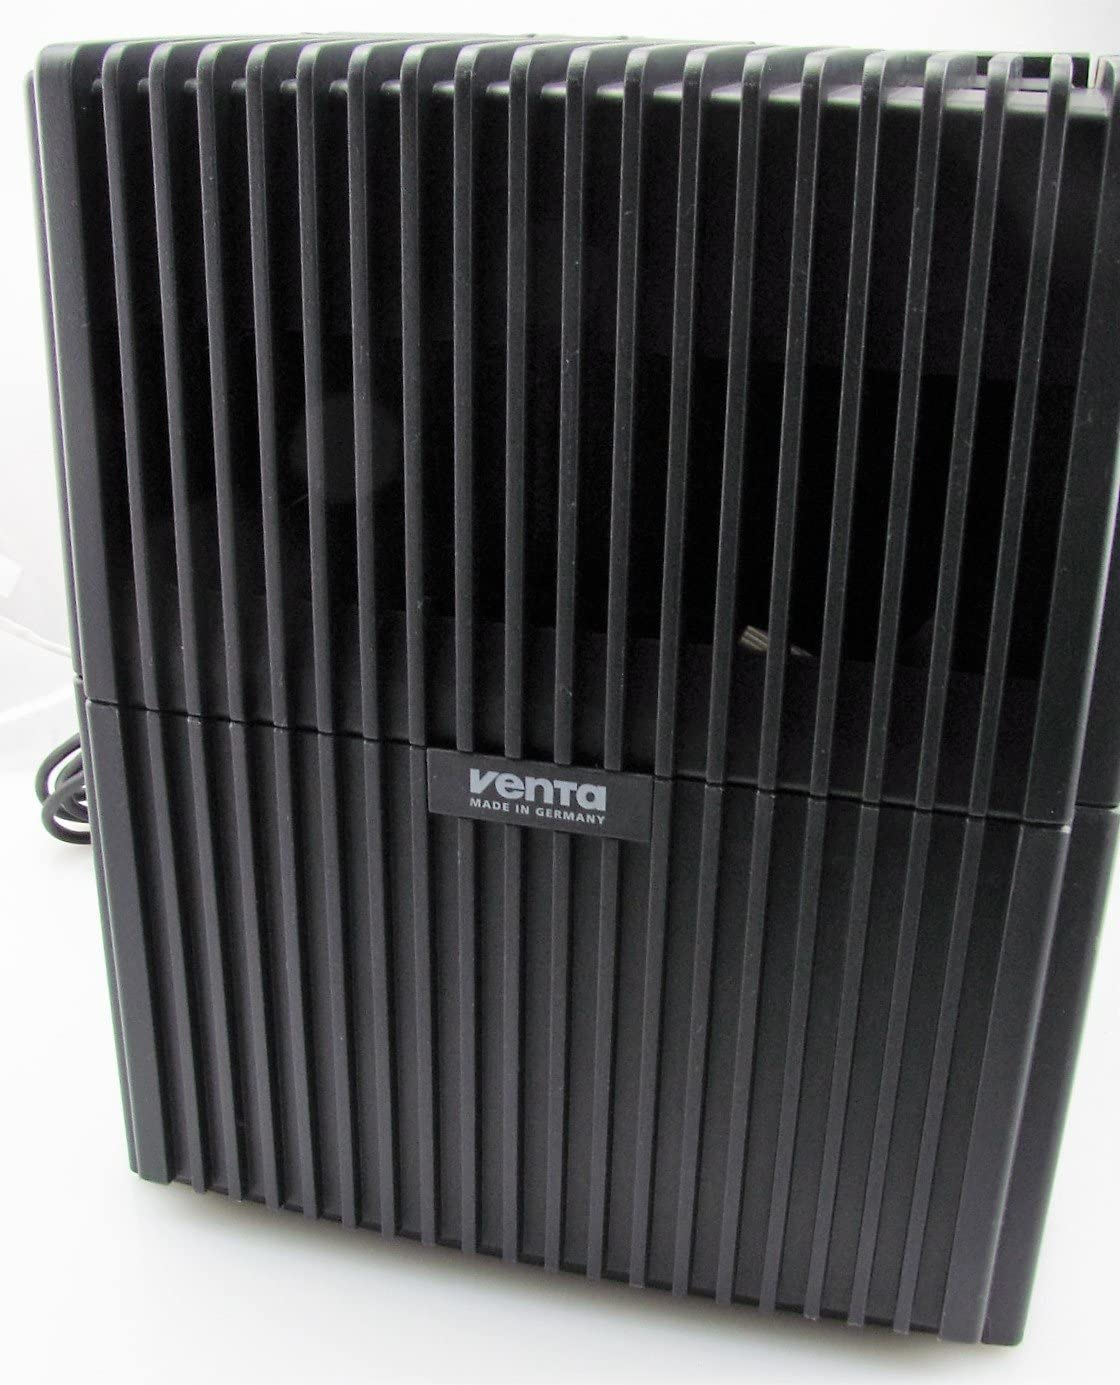 VENTA Airwasher LW24 Plus 2 in 1 Humidifier and Air Purifier 2011 Model